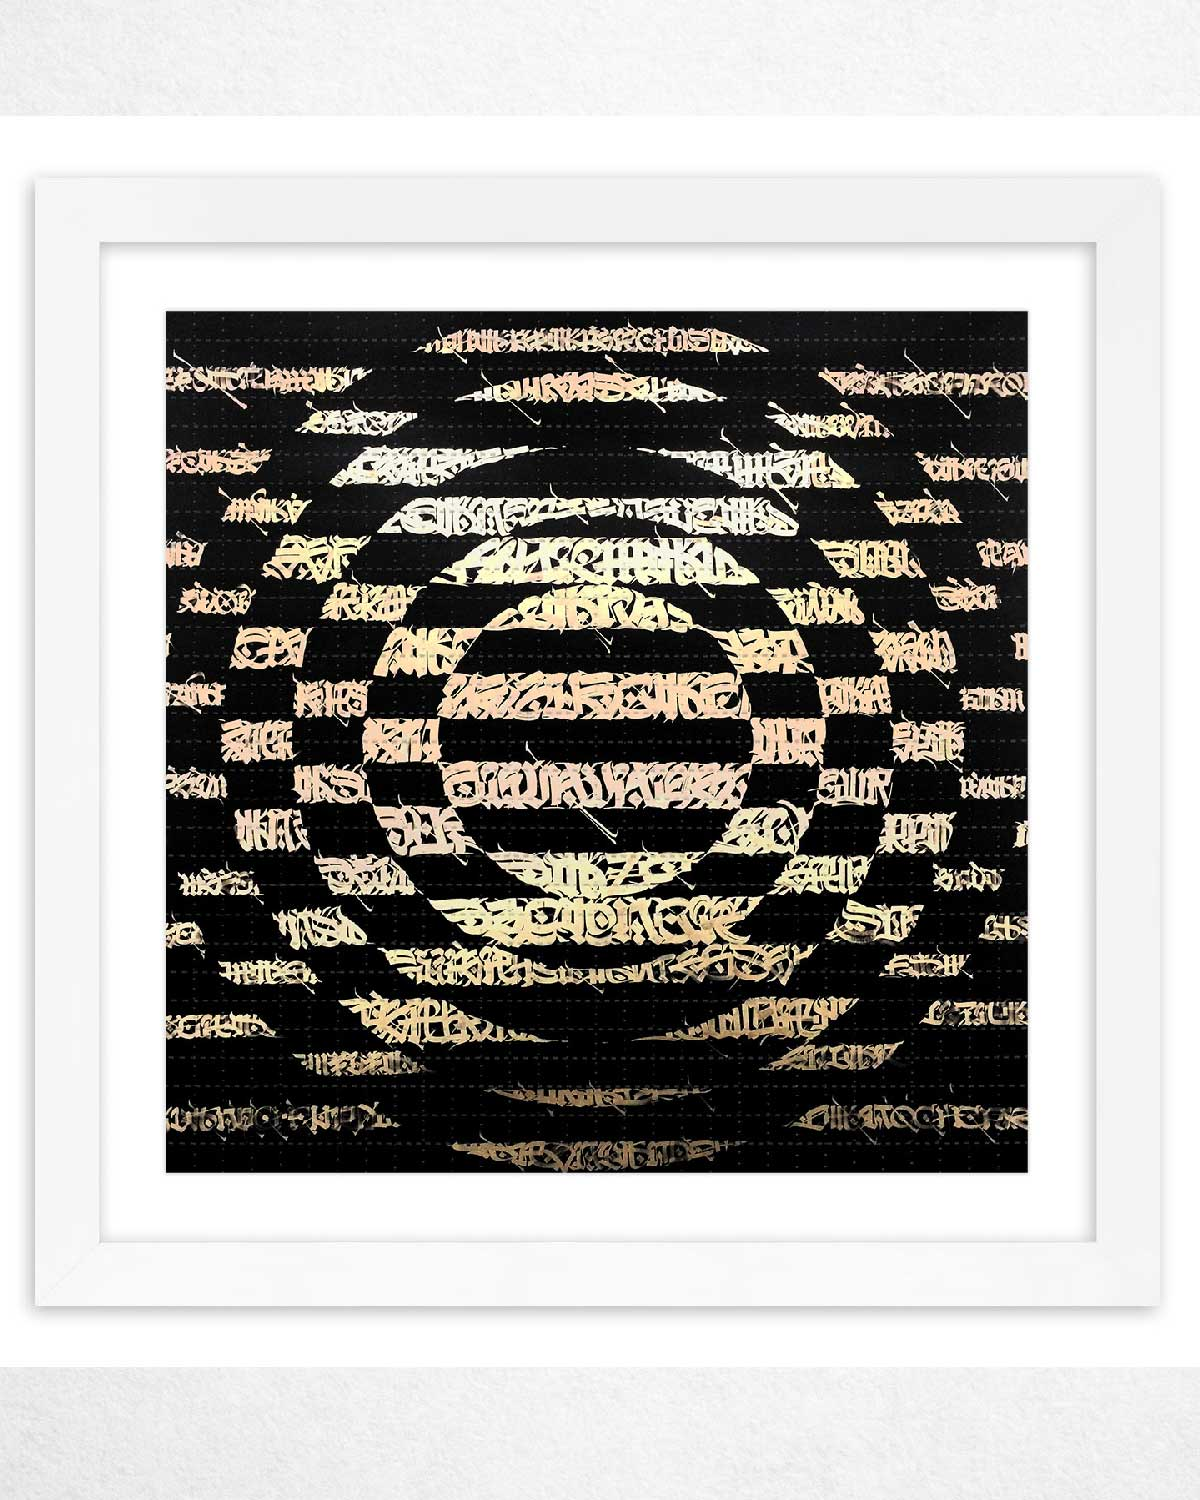 Calligraphy Letter Print blotter paper by Said Dokins El Ocaso